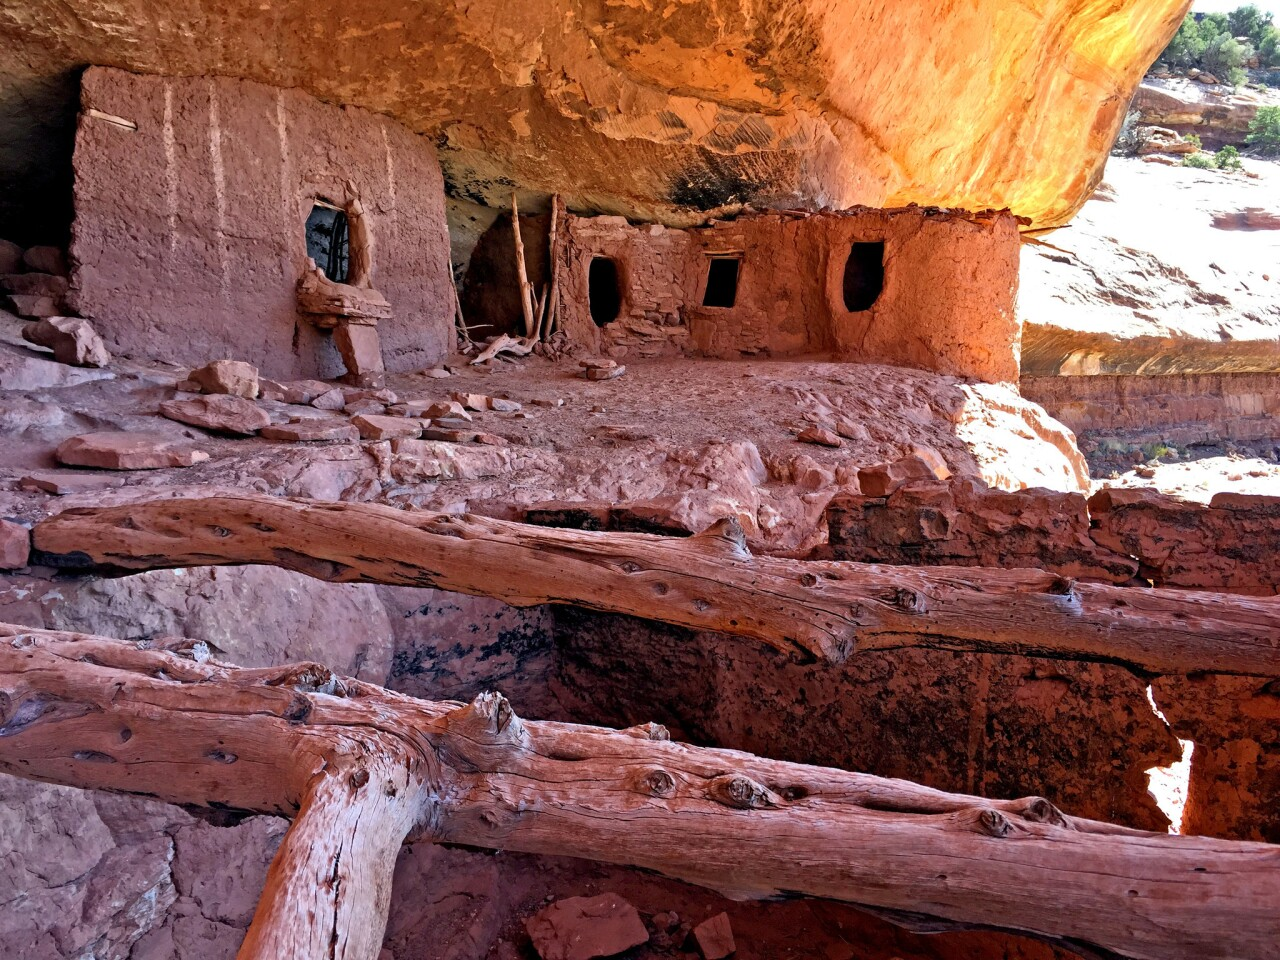 Moon House was a compound built by the Anasazi on Cedar Mesa in what is now Utah. It is one of the largest concentrations of pre-Columbian ruins in the U.S.